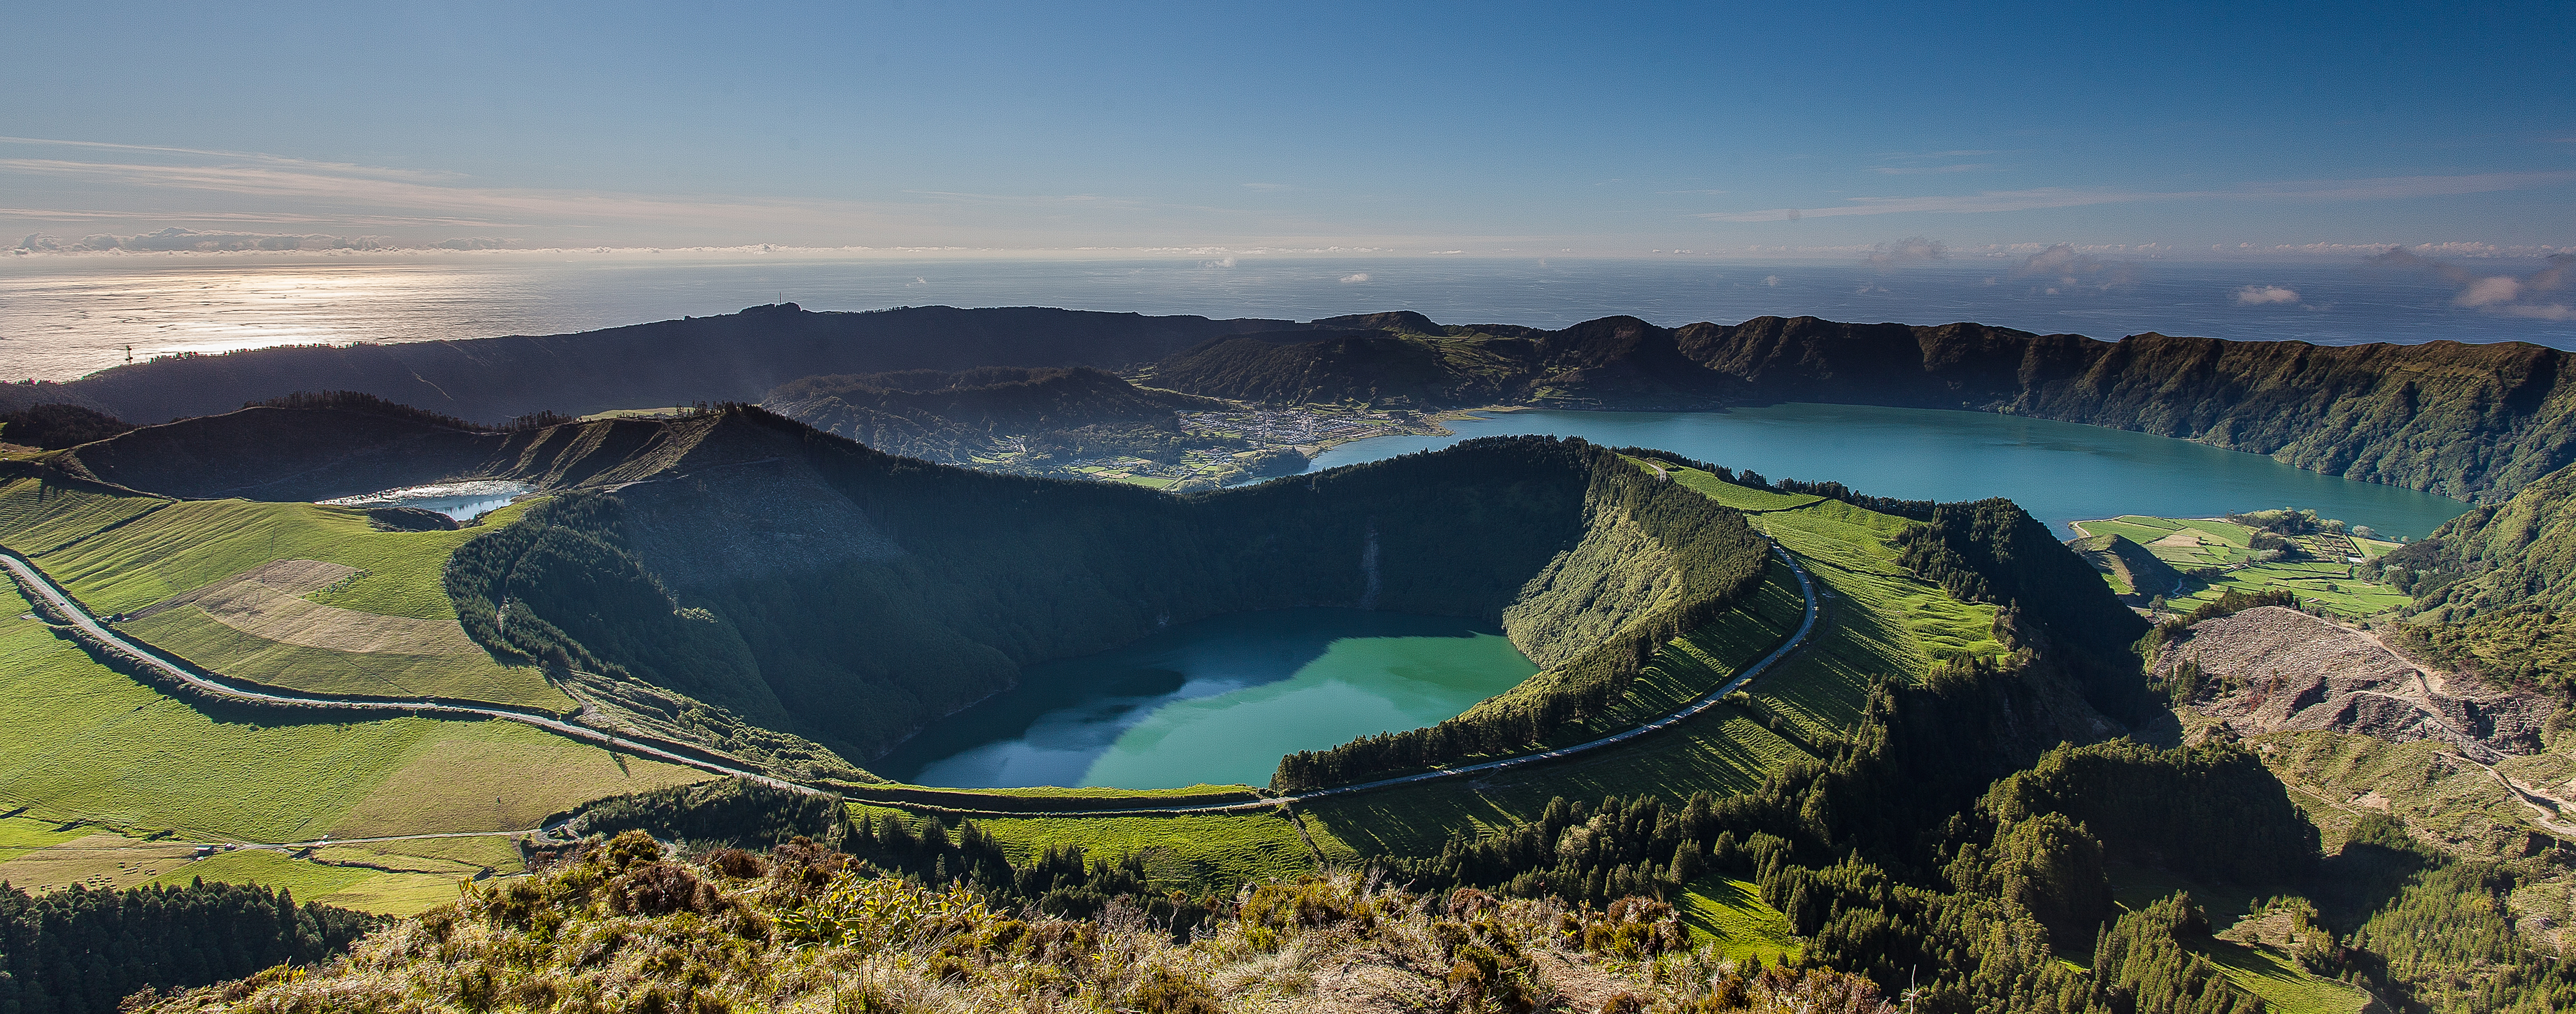 Portugal _Azores_travel_island_eco_nature_vacations_holidays_ocean_mountain_gree